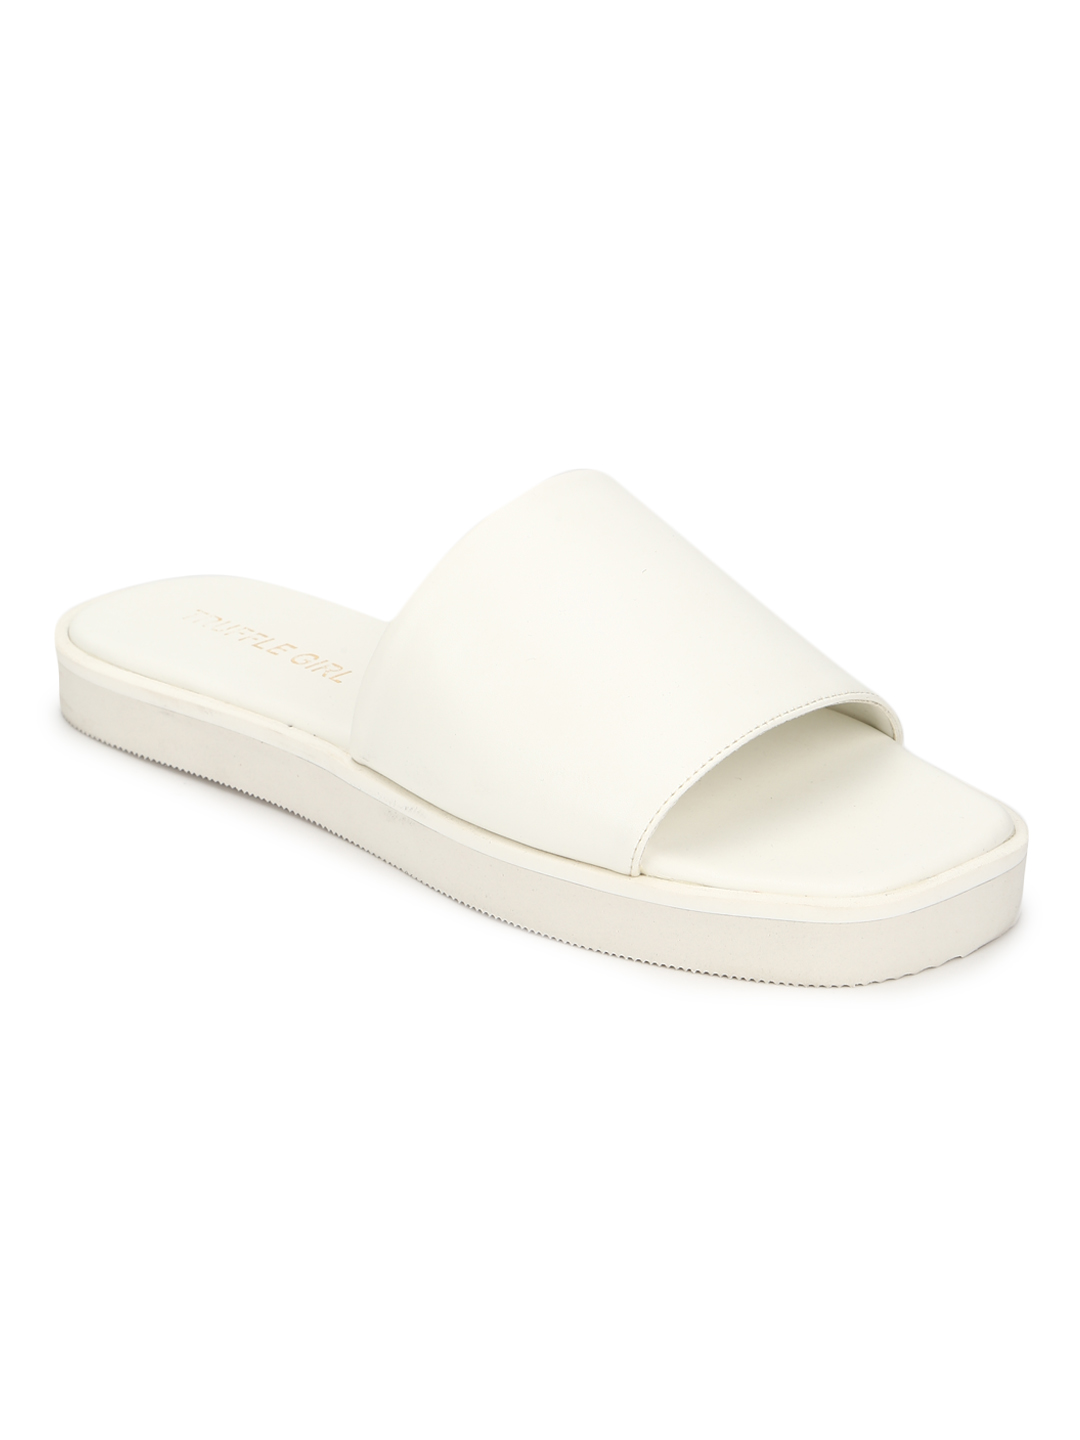 Truffle Collection | Truffle Collection White PU Wide Strap Slides